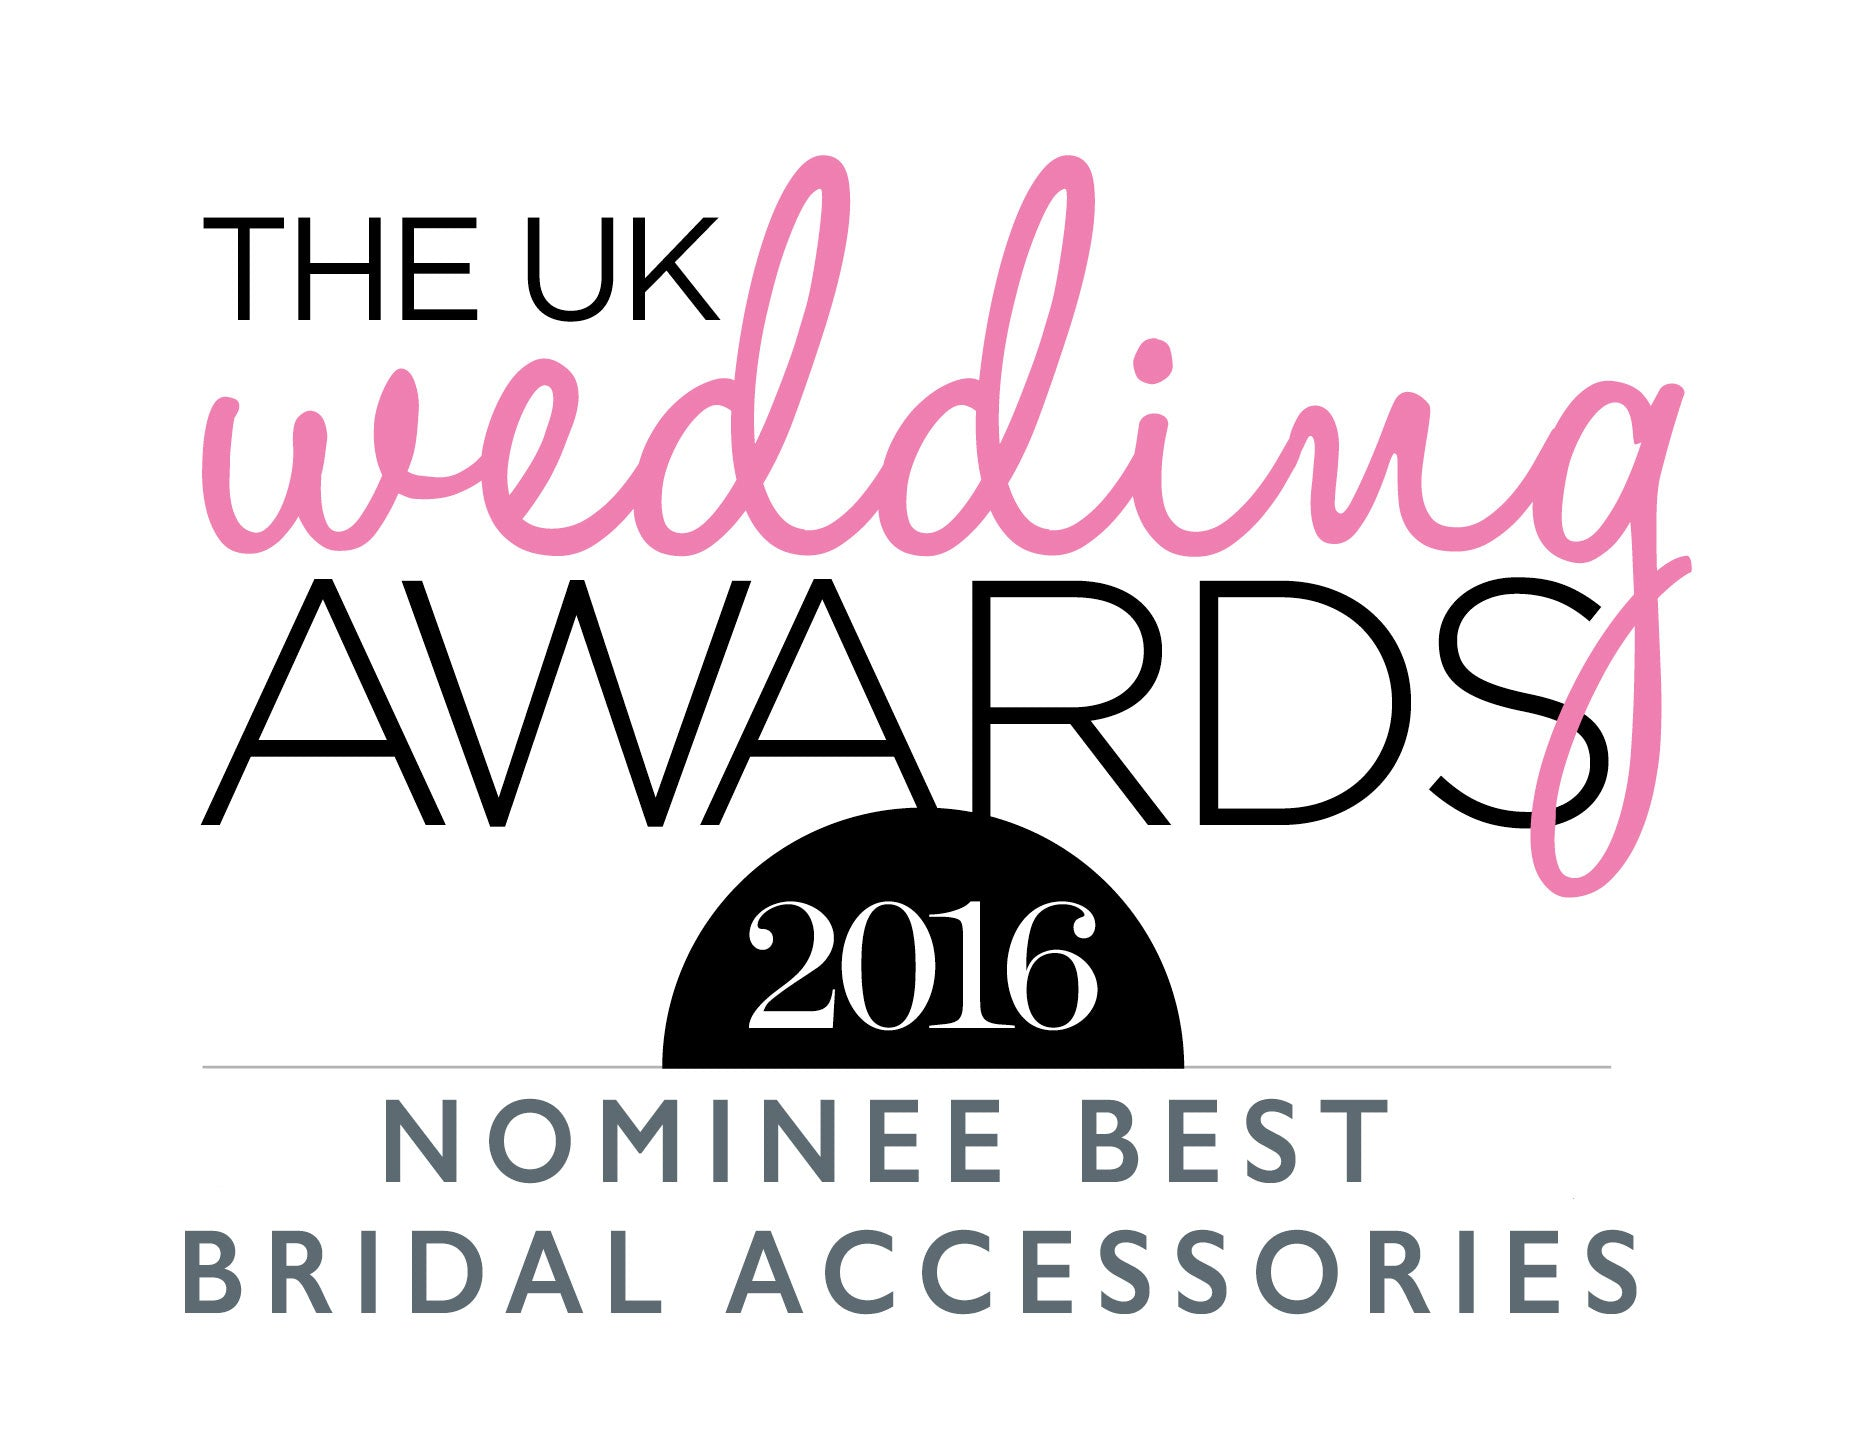 UK wedding awards 2016